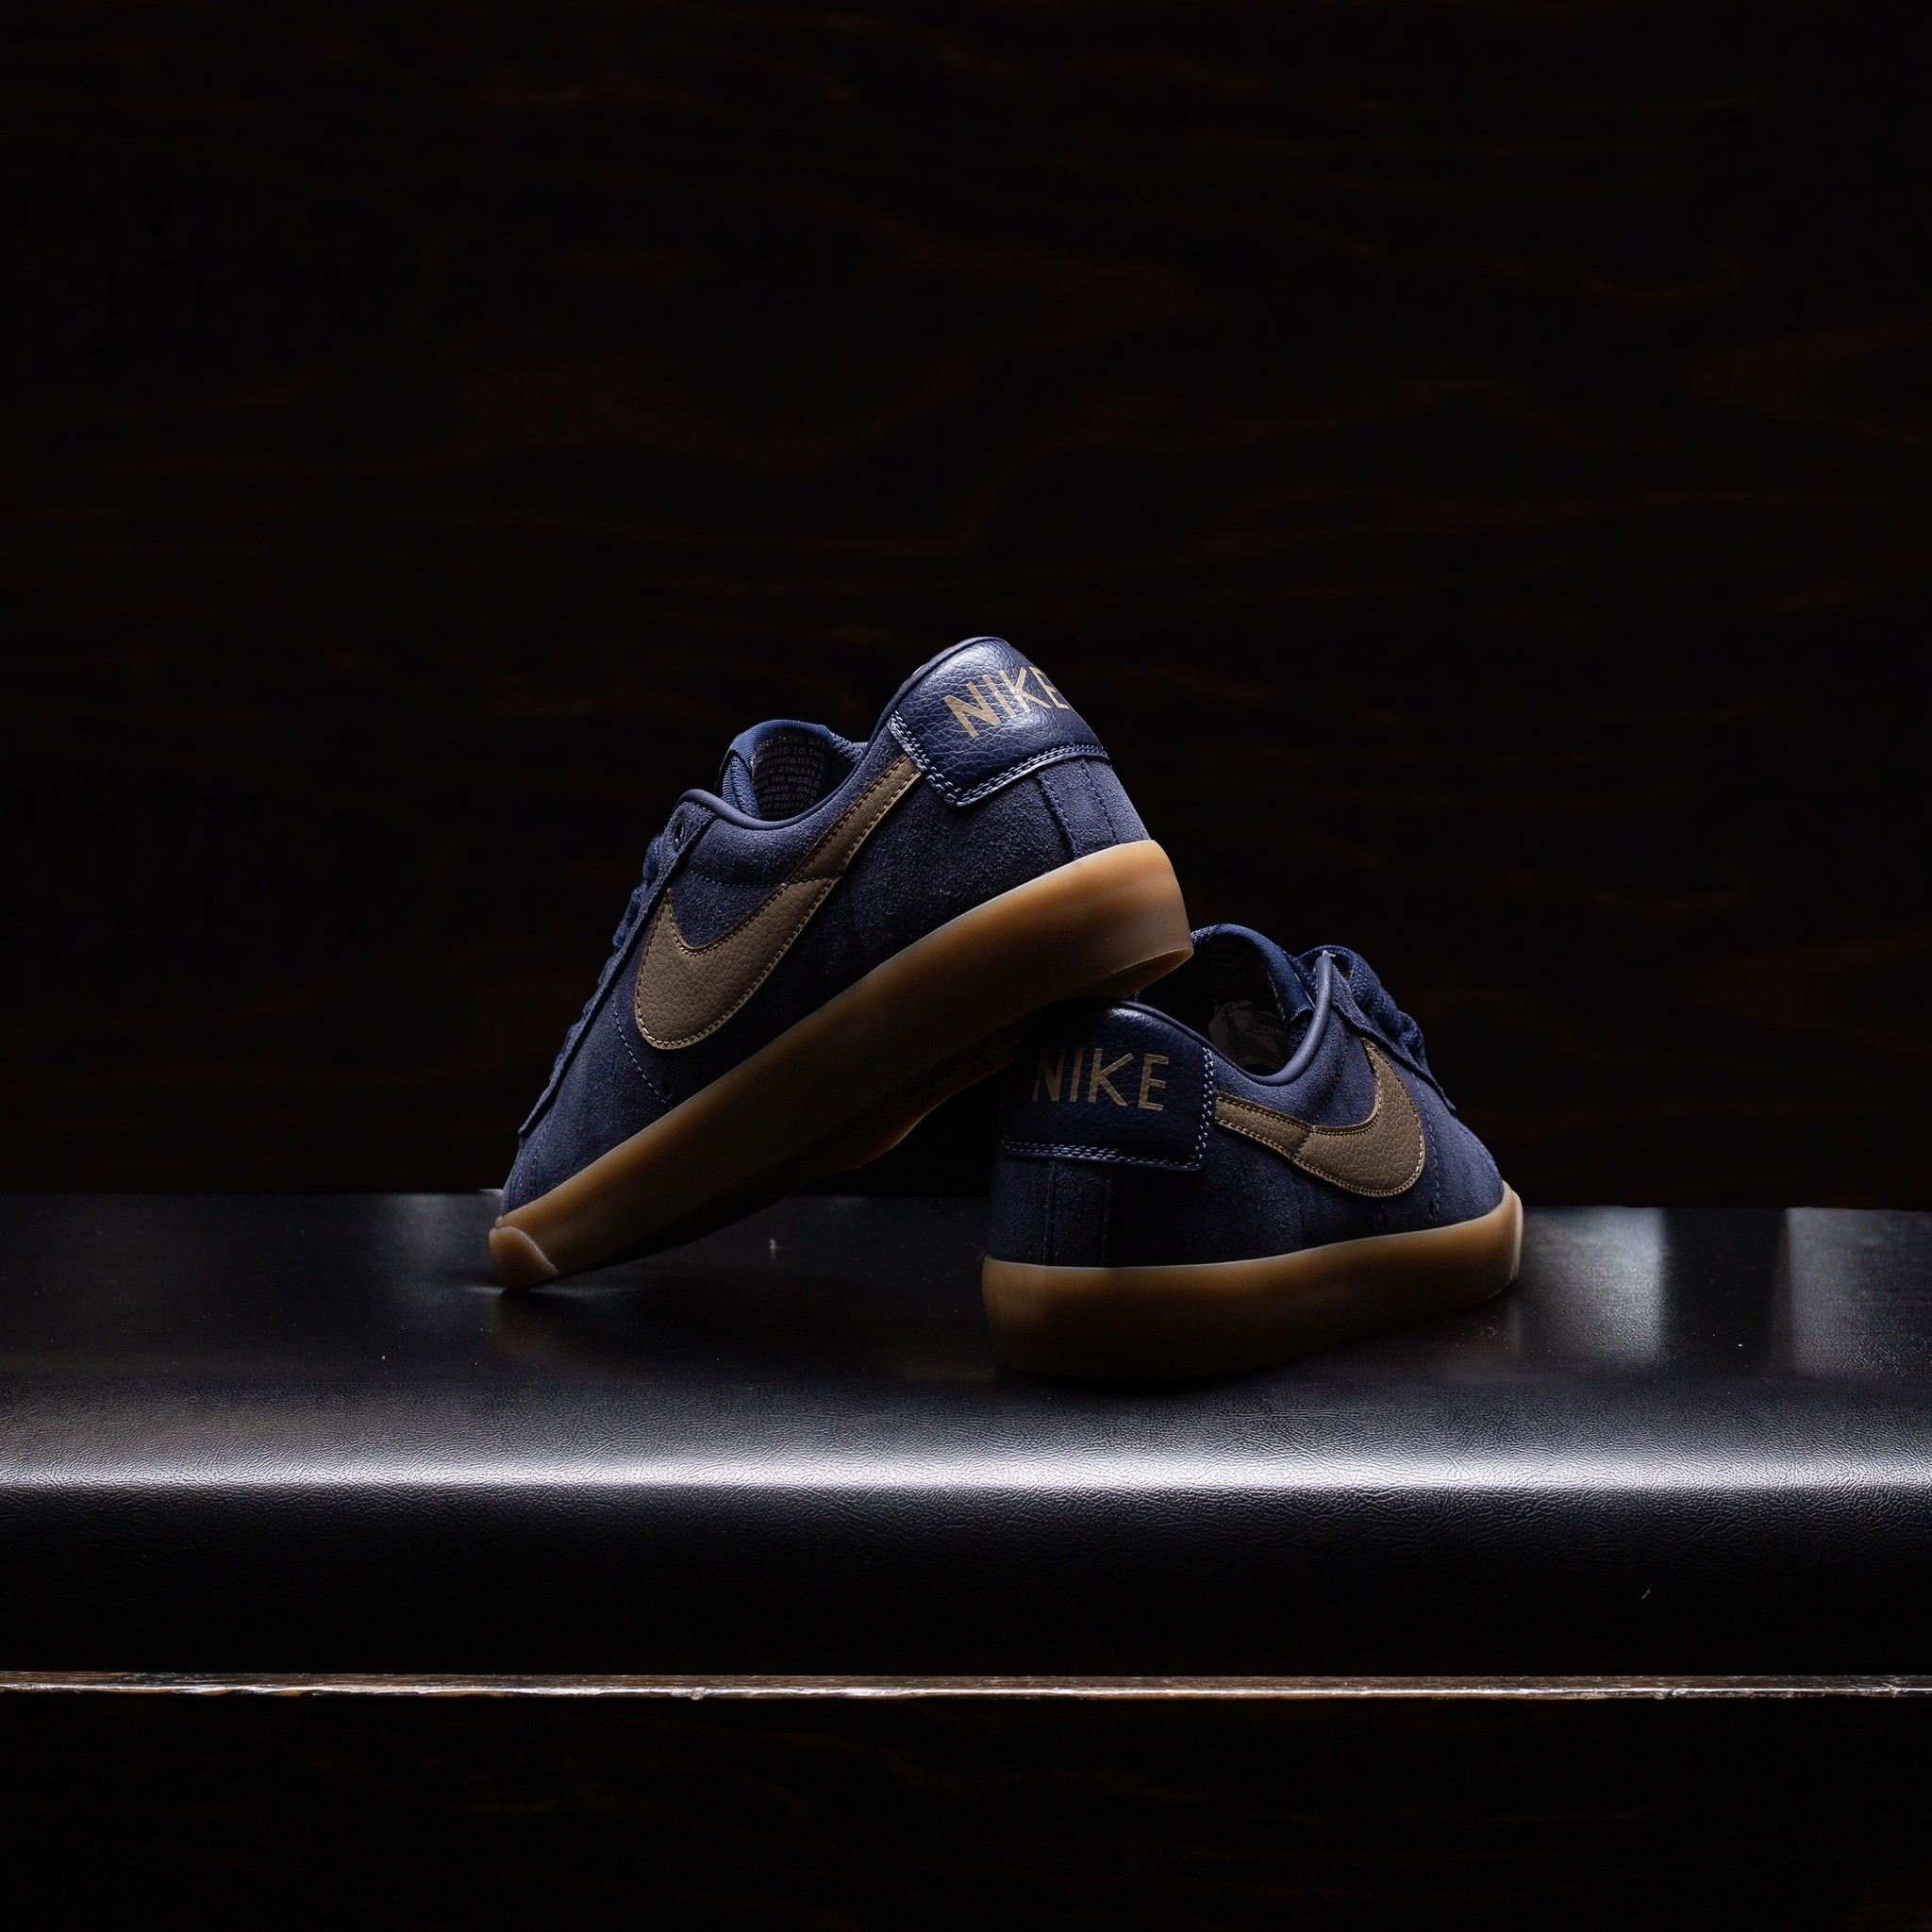 Nike SB Blazer Low GT Midnight Navy/Gum